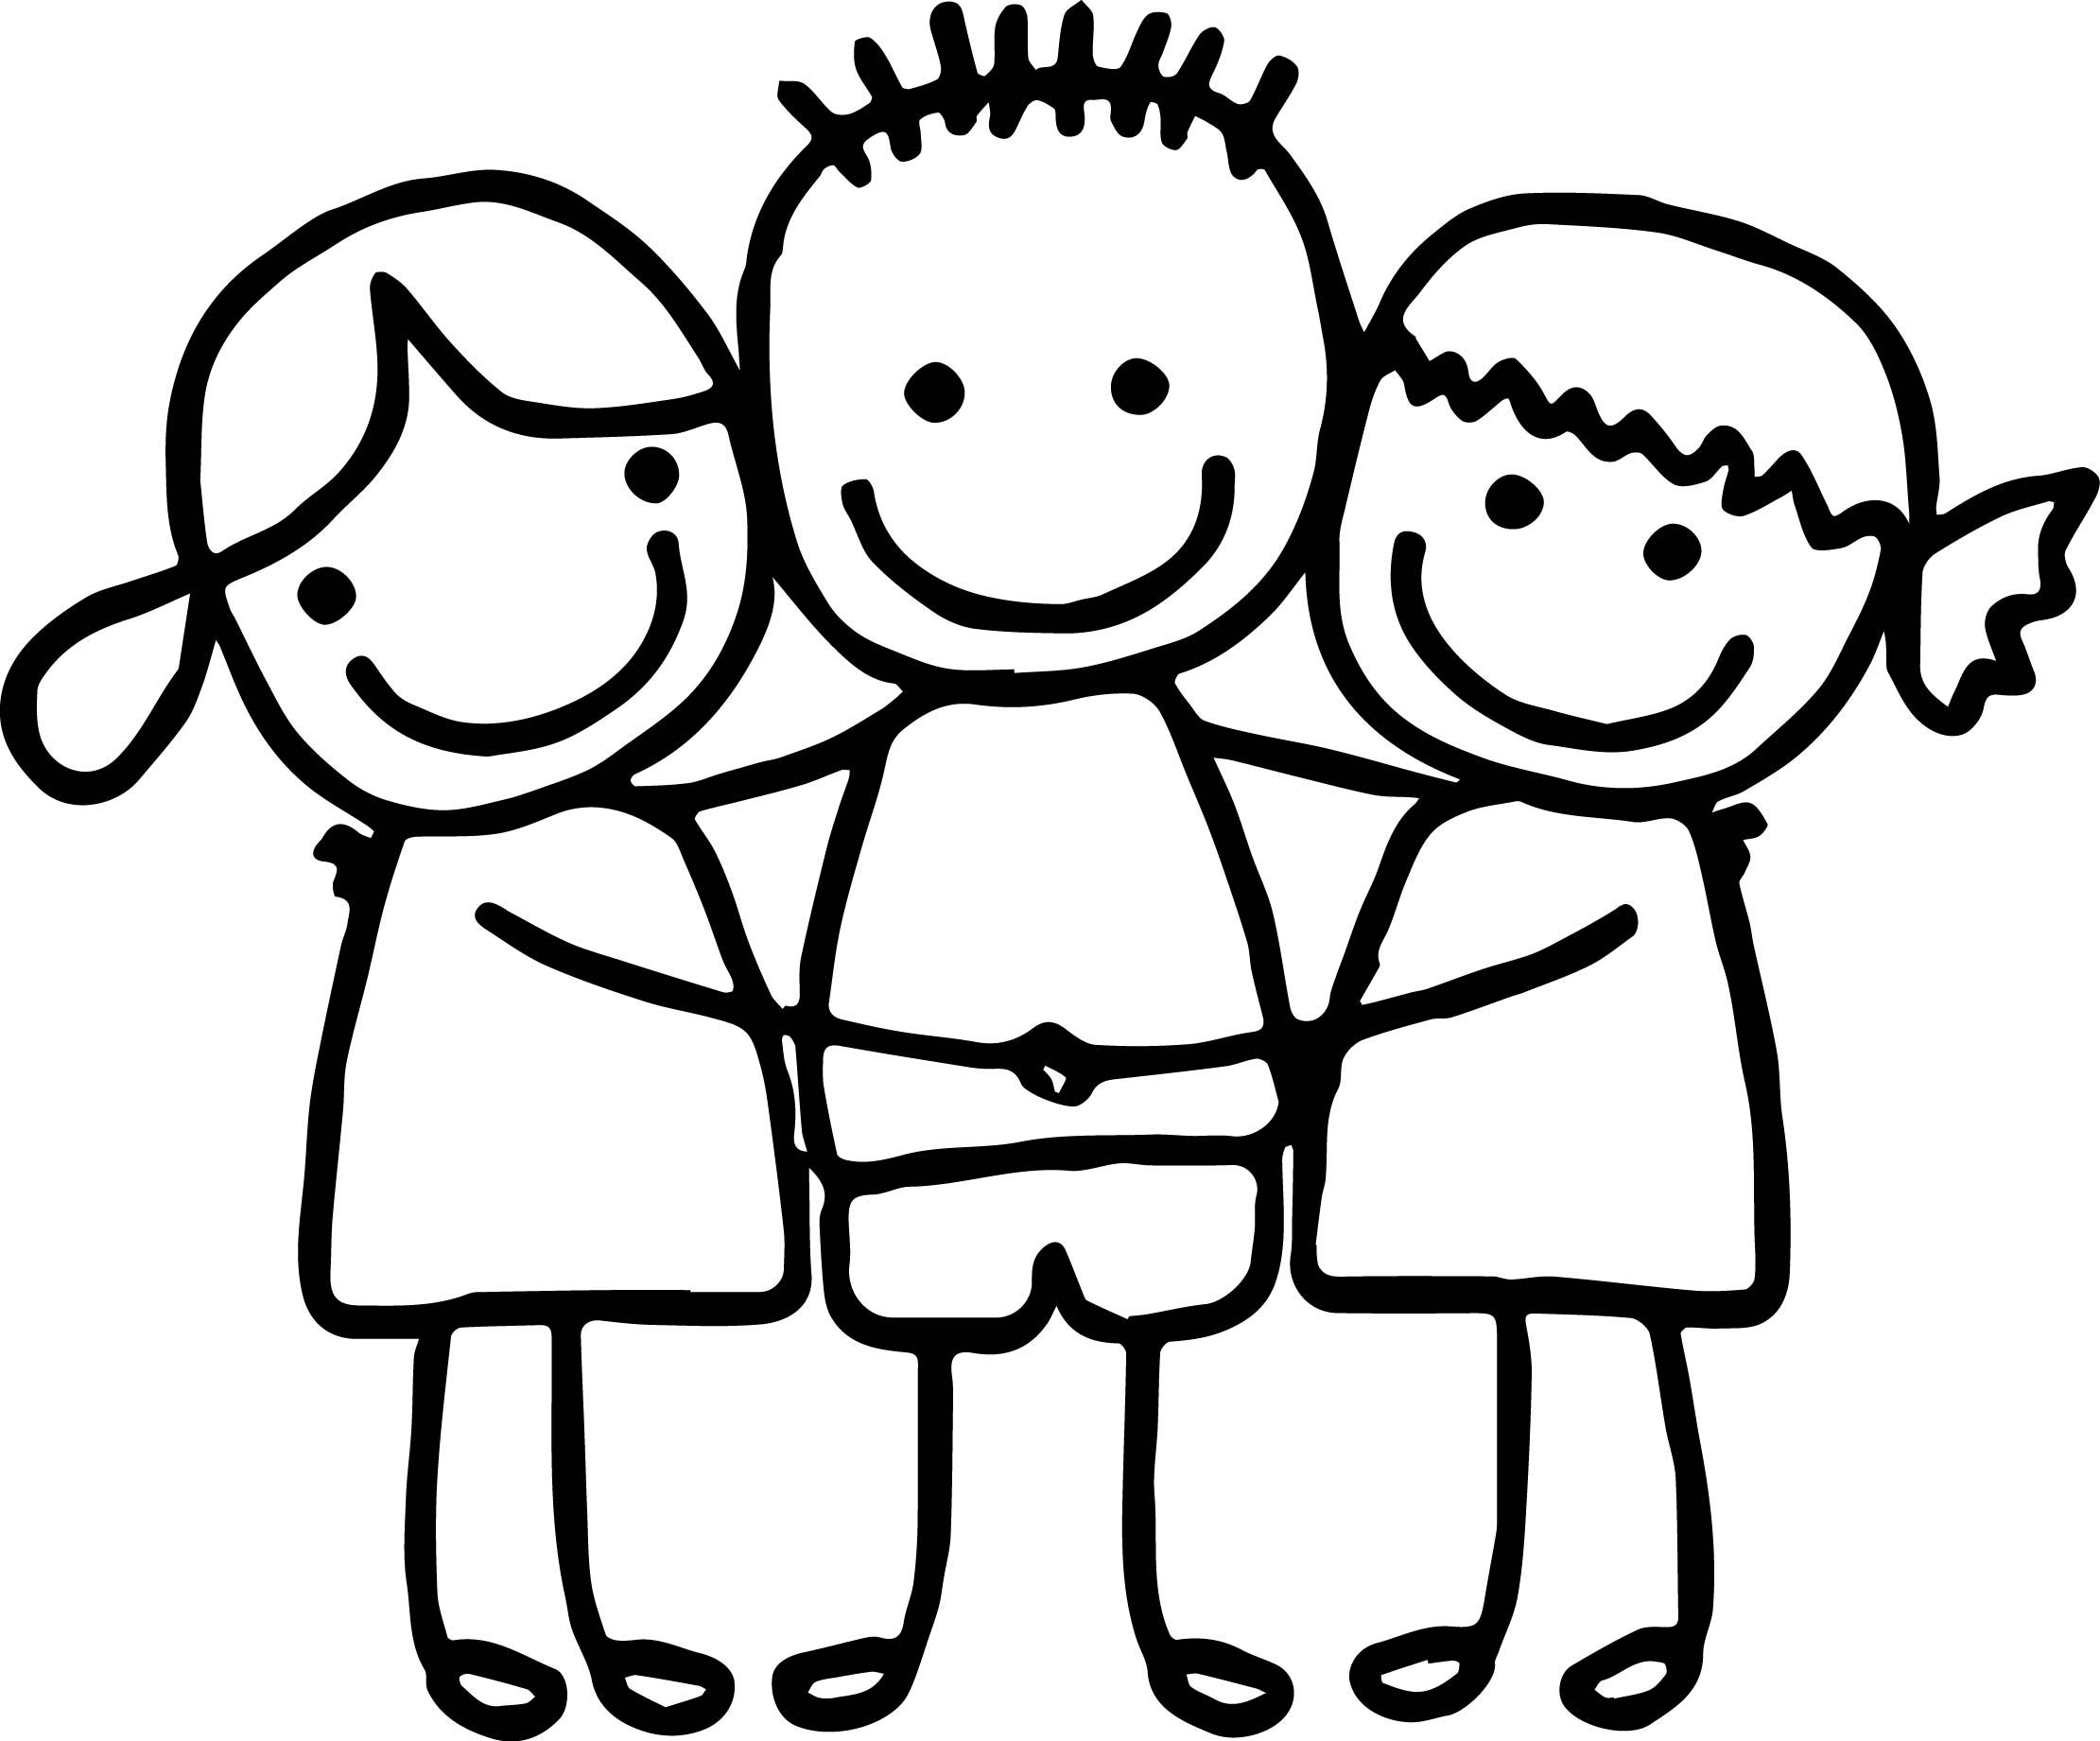 2221x1841 A Girls Best Friend Coloring Pages Womanmate Com Within Hug Child